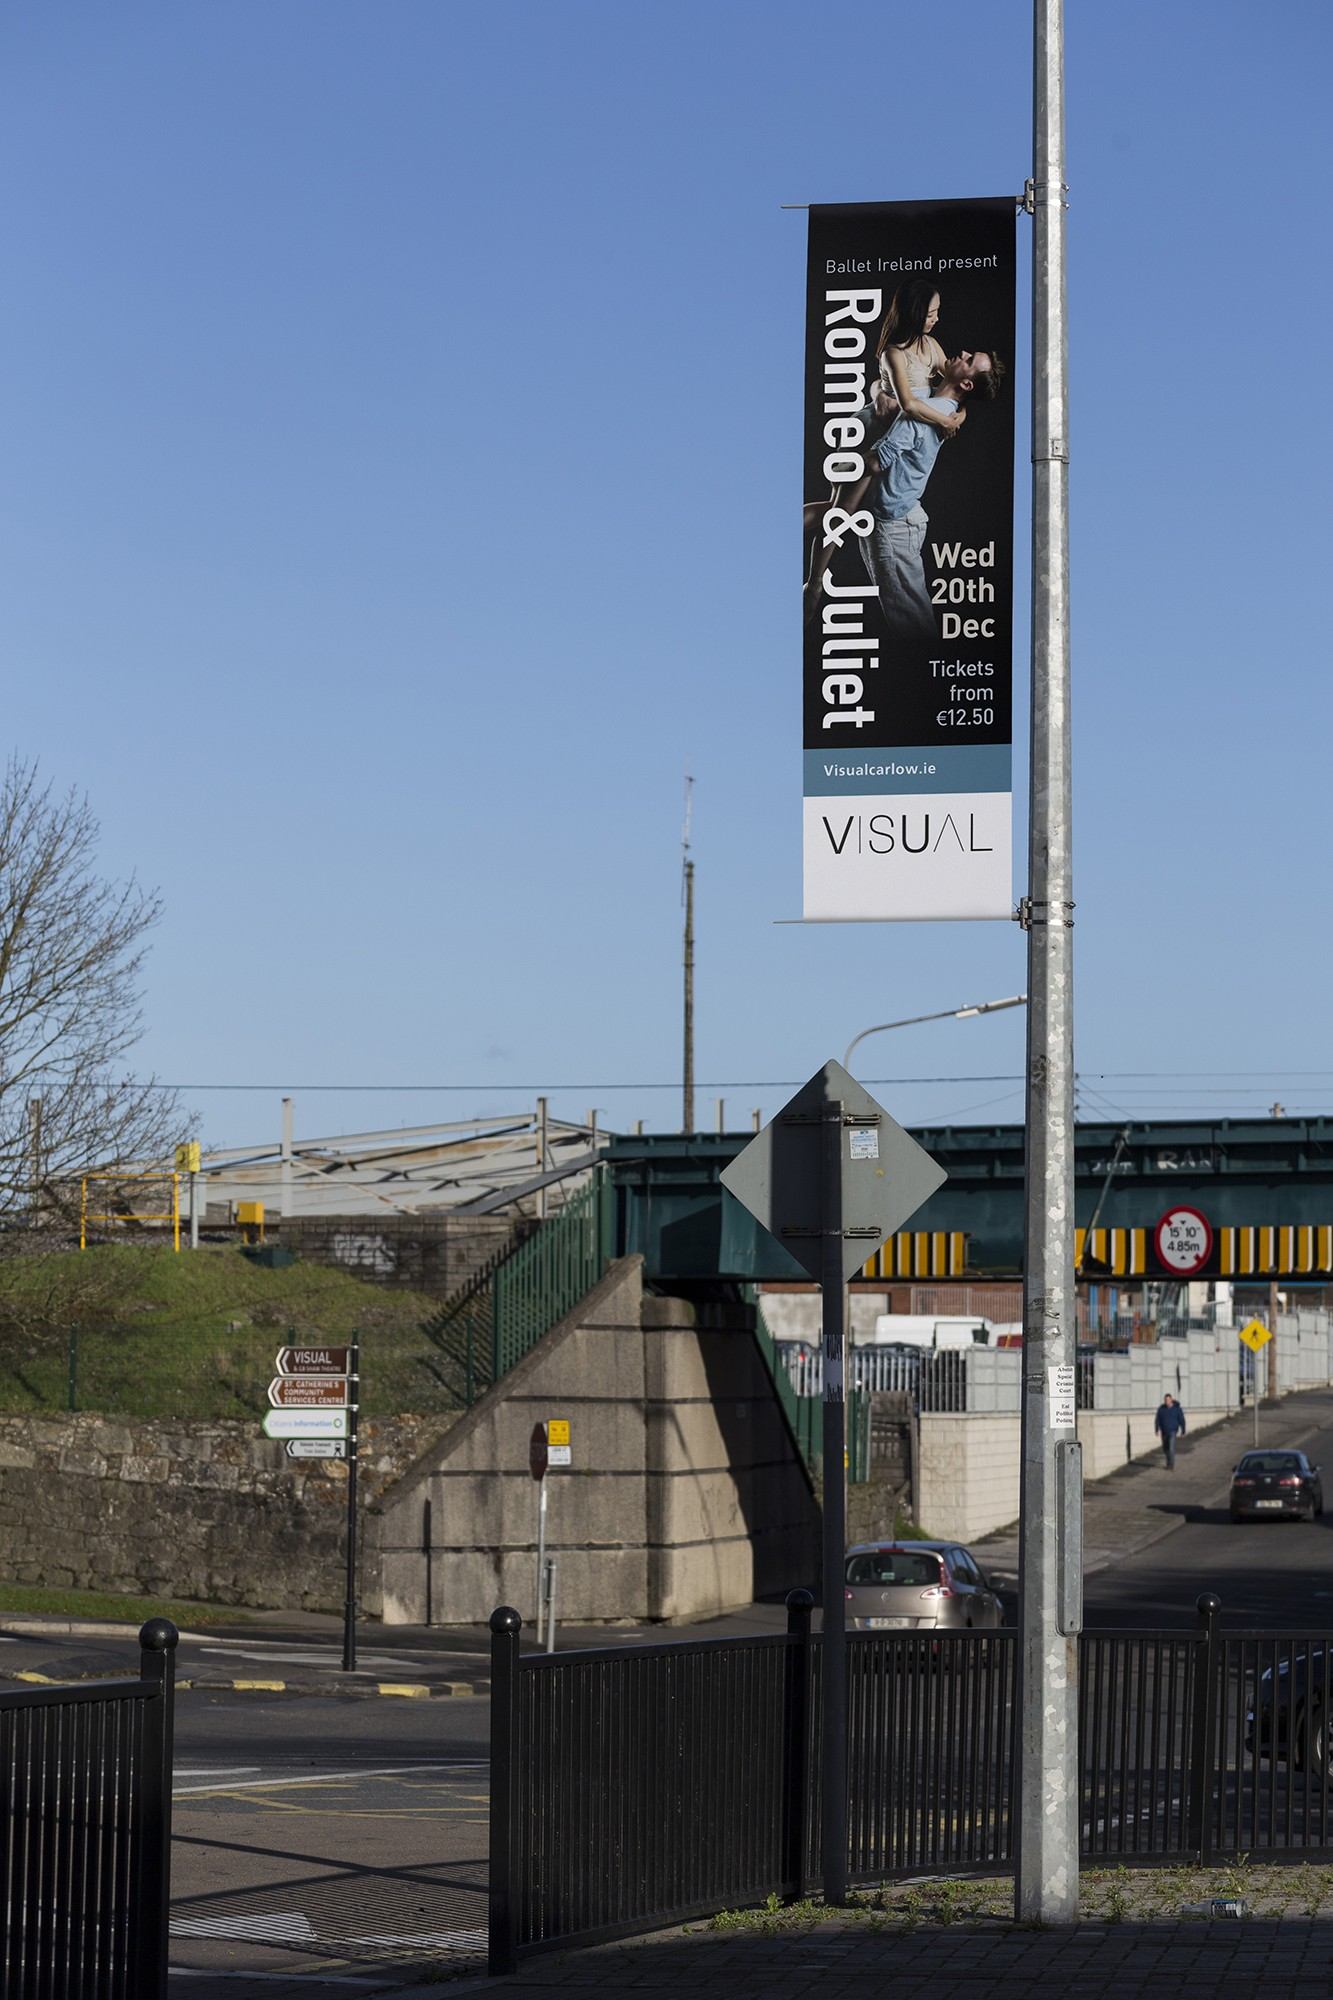 Lamp post Banners - Touchpoint Media, Carlow